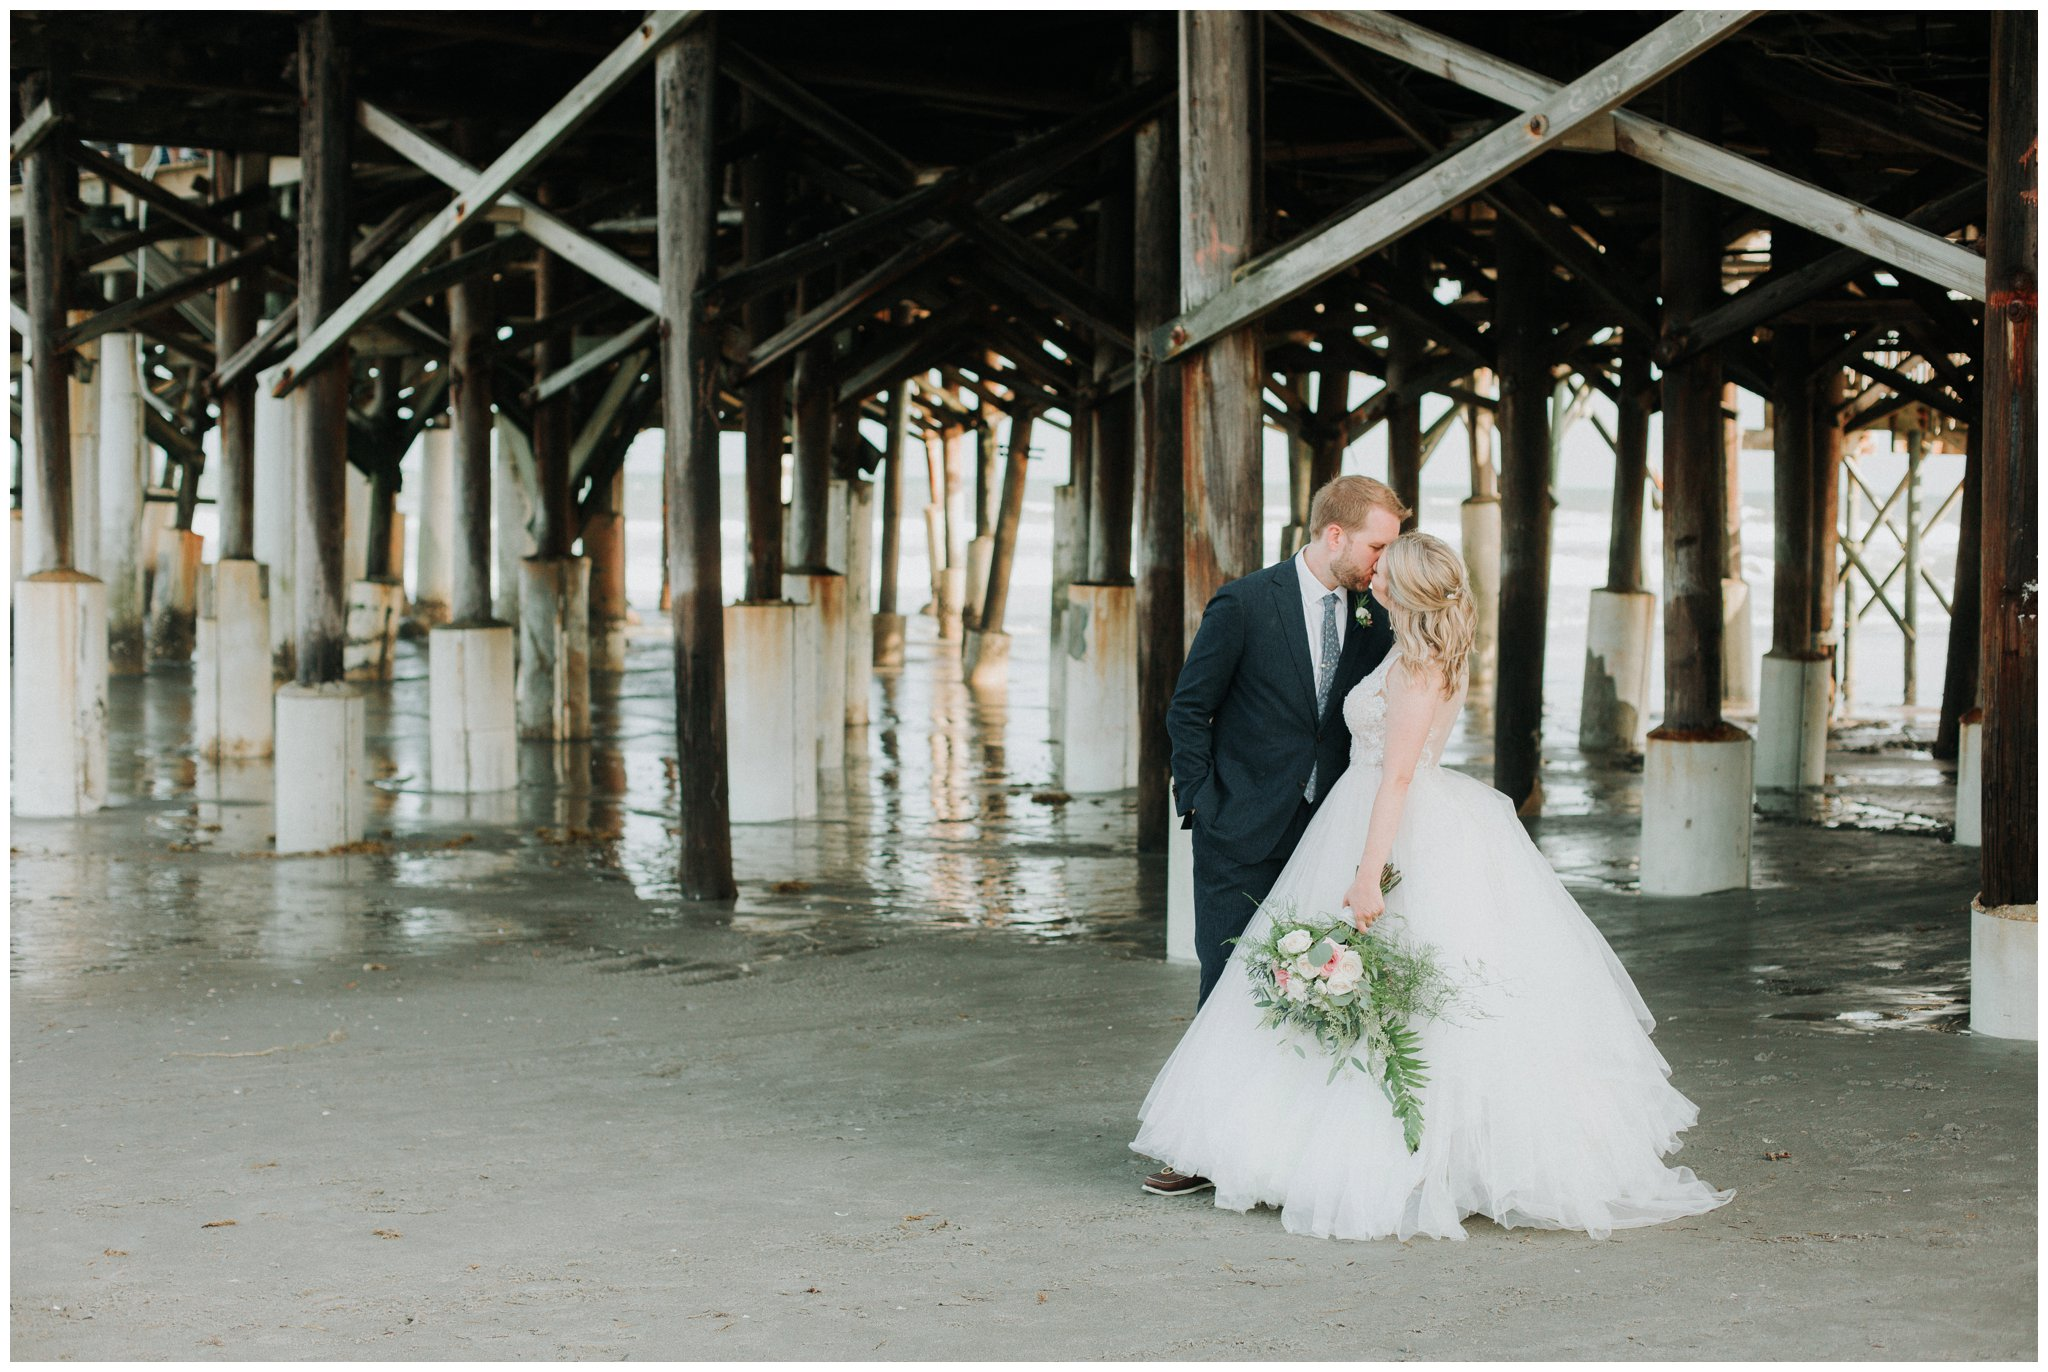 kaley and kevin-coco beach pier wedding-kimberly smith photography_0057.jpg